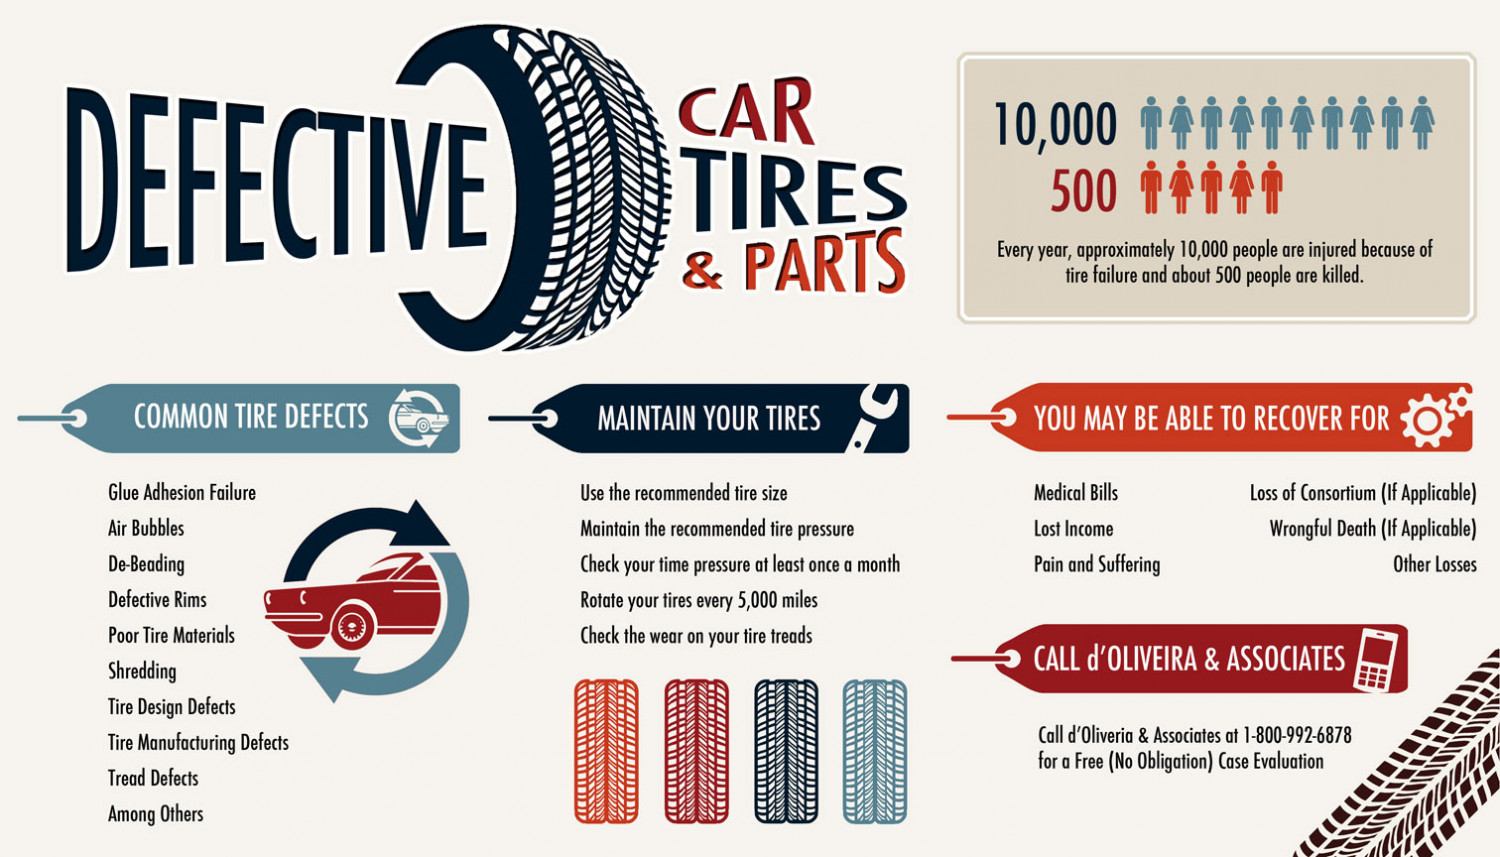 Defective Car Tires & Parts Infographic